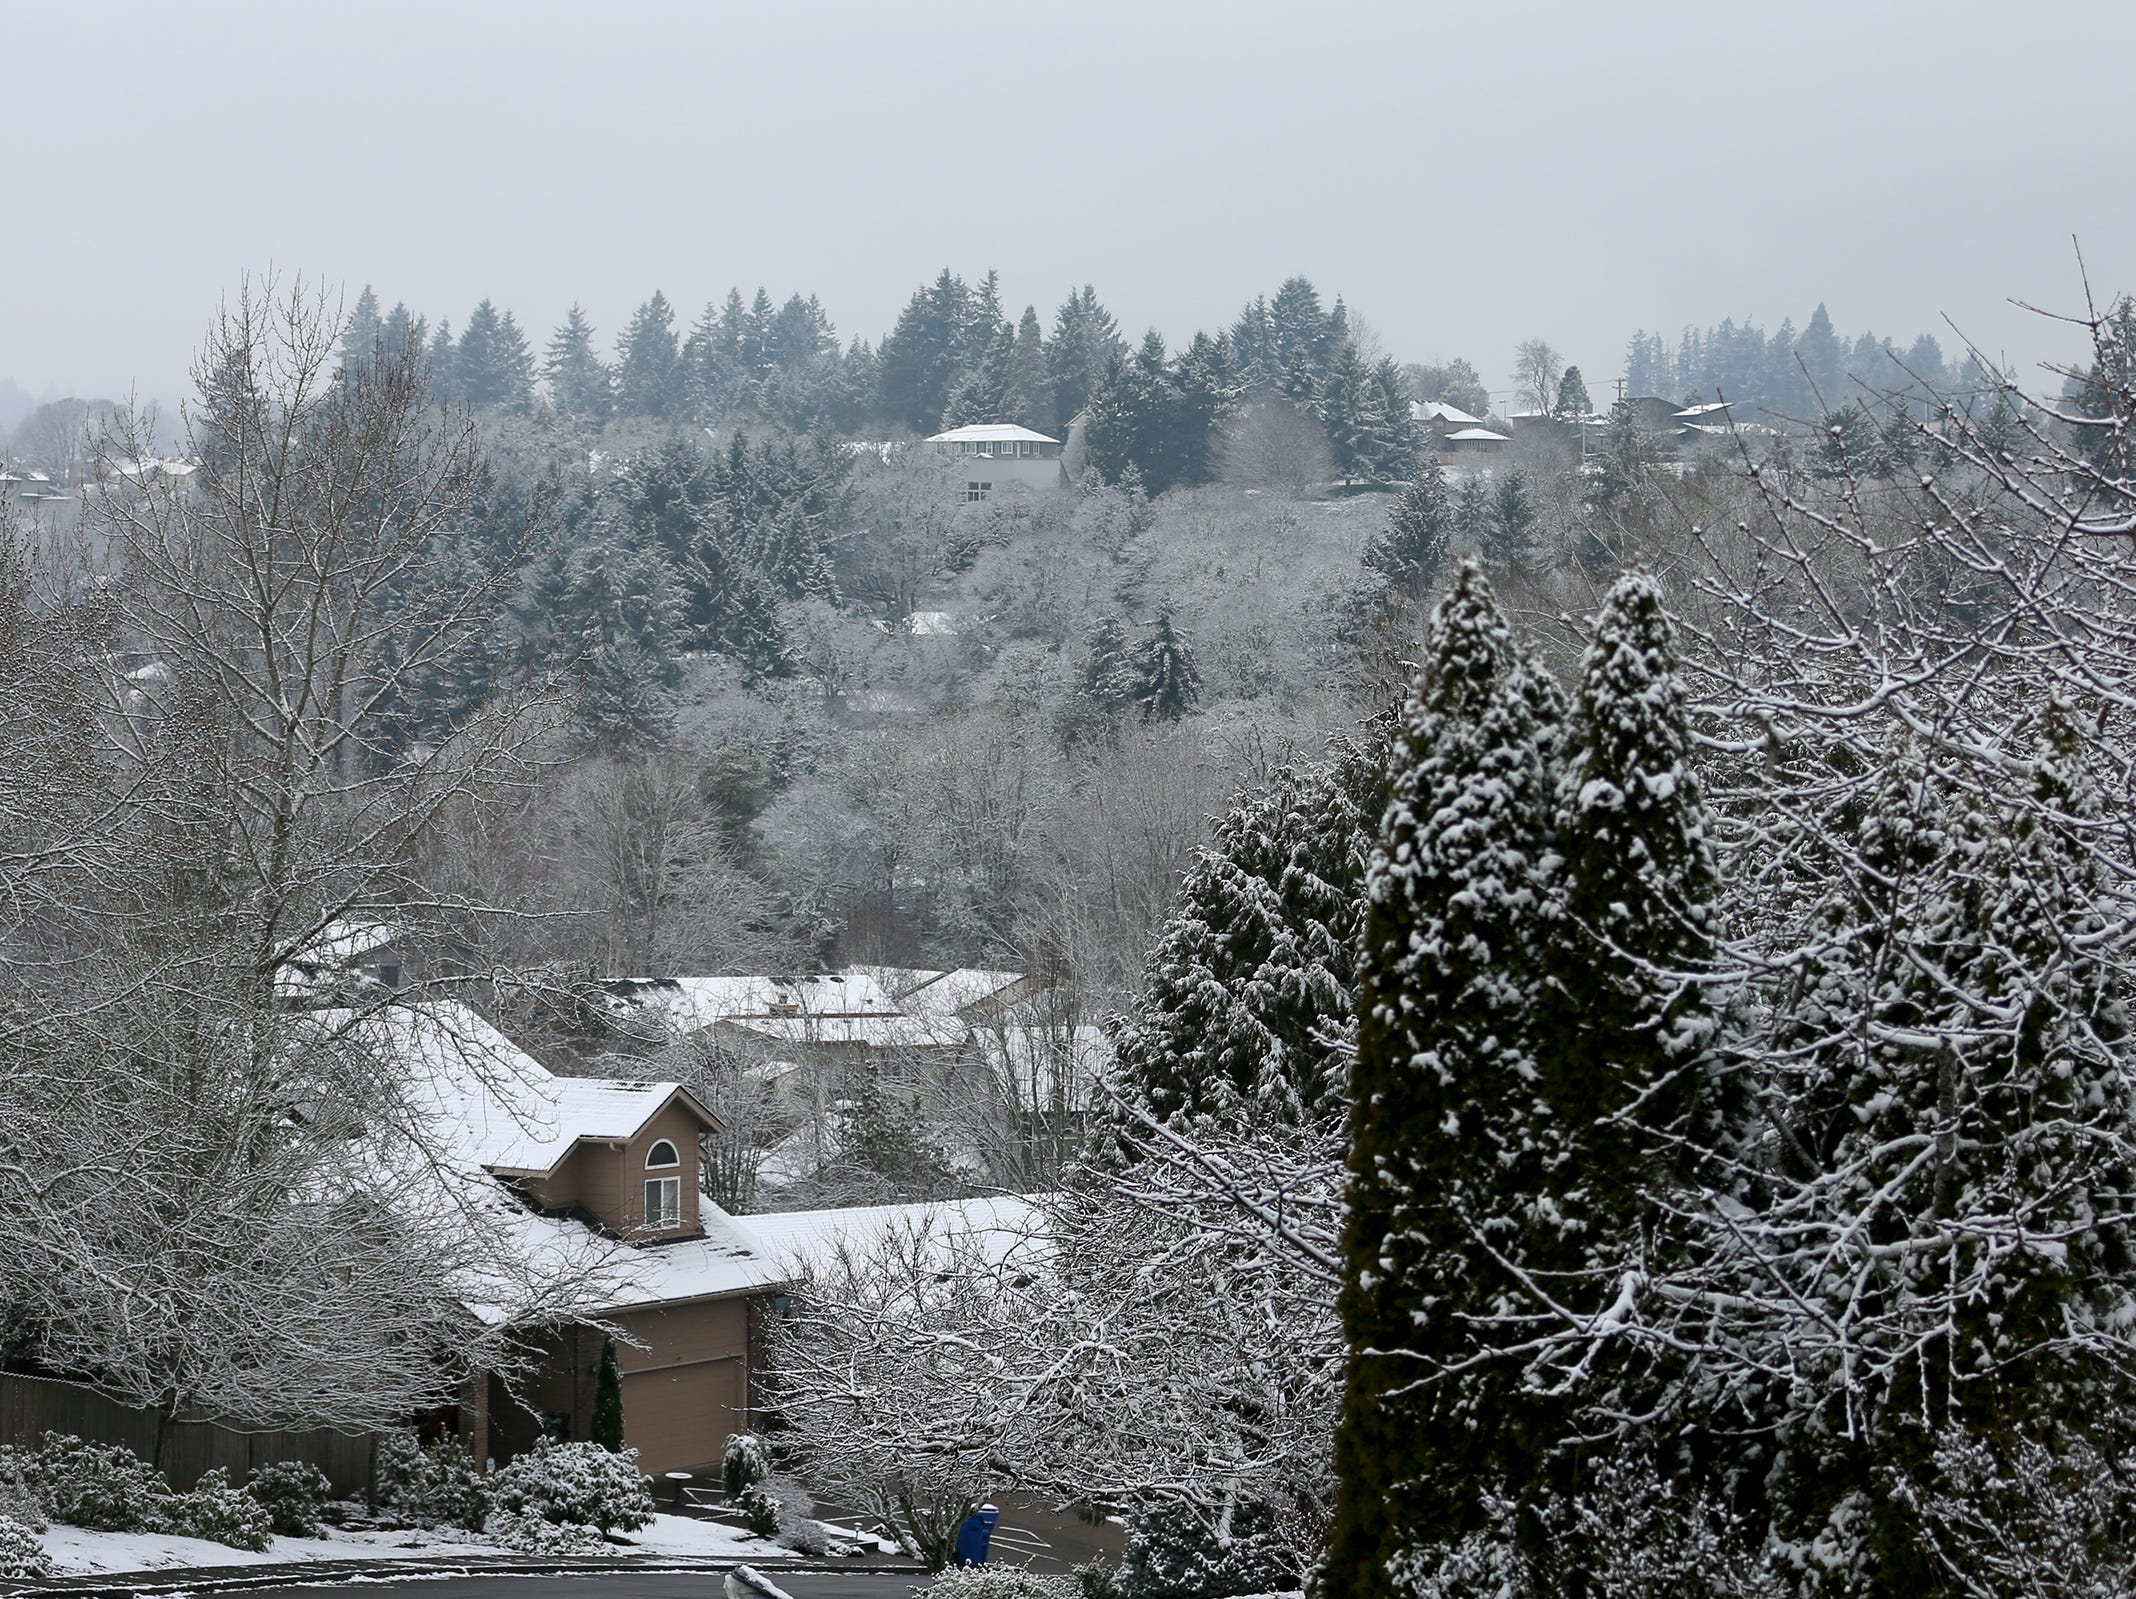 West Salem houses in the snow on Tuesday, Feb. 5, 2019.